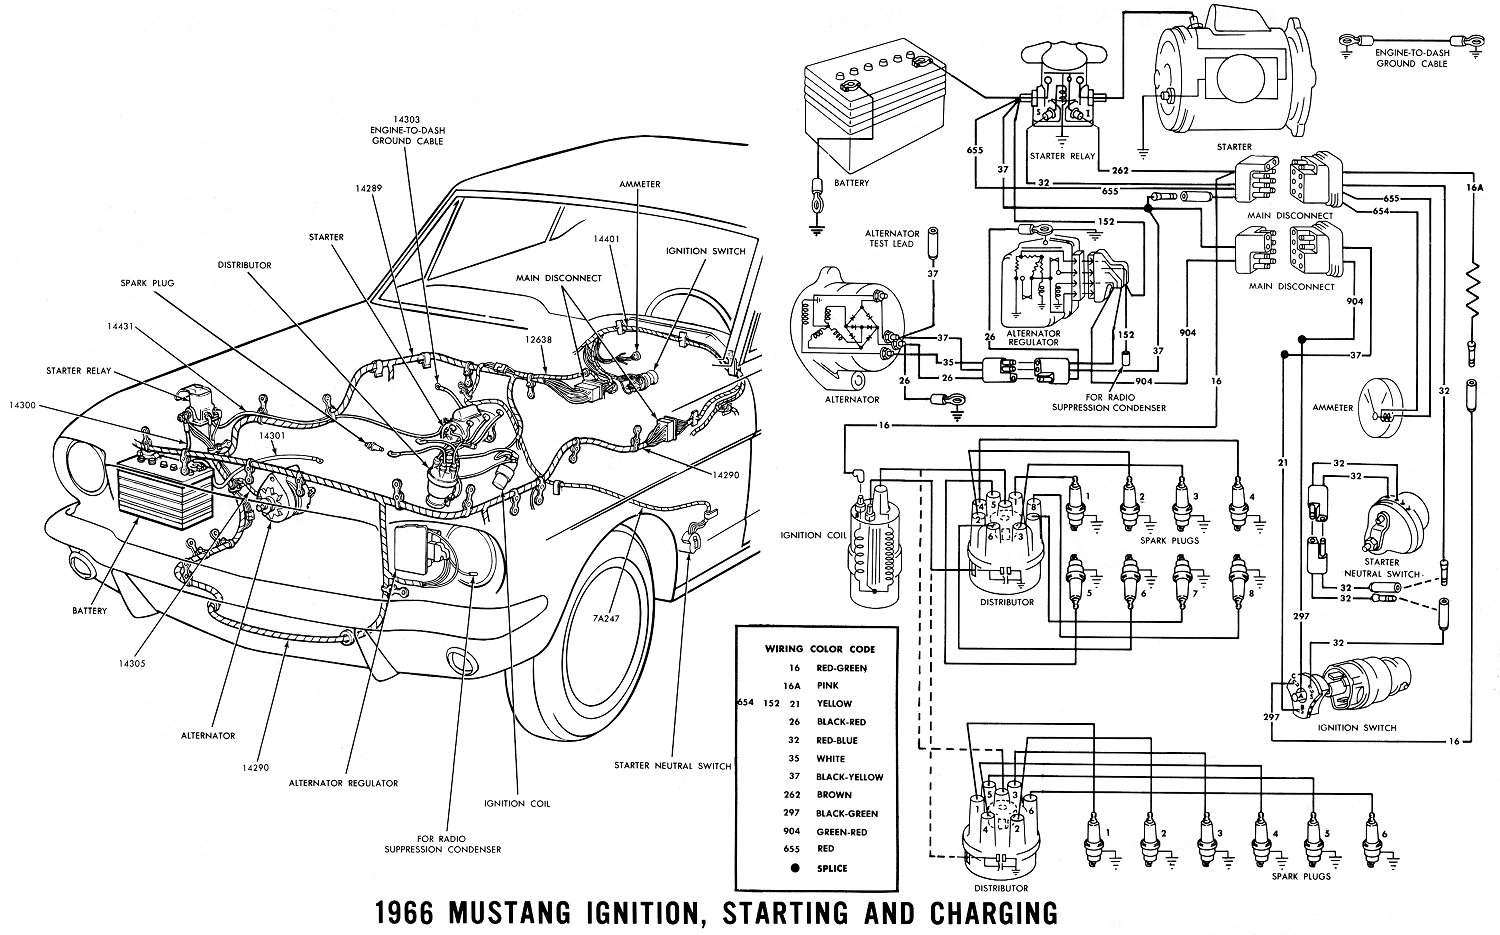 66ignit 1966 mustang wiring diagrams average joe restoration wiring diagram for mustang 2054 skid steer at gsmportal.co